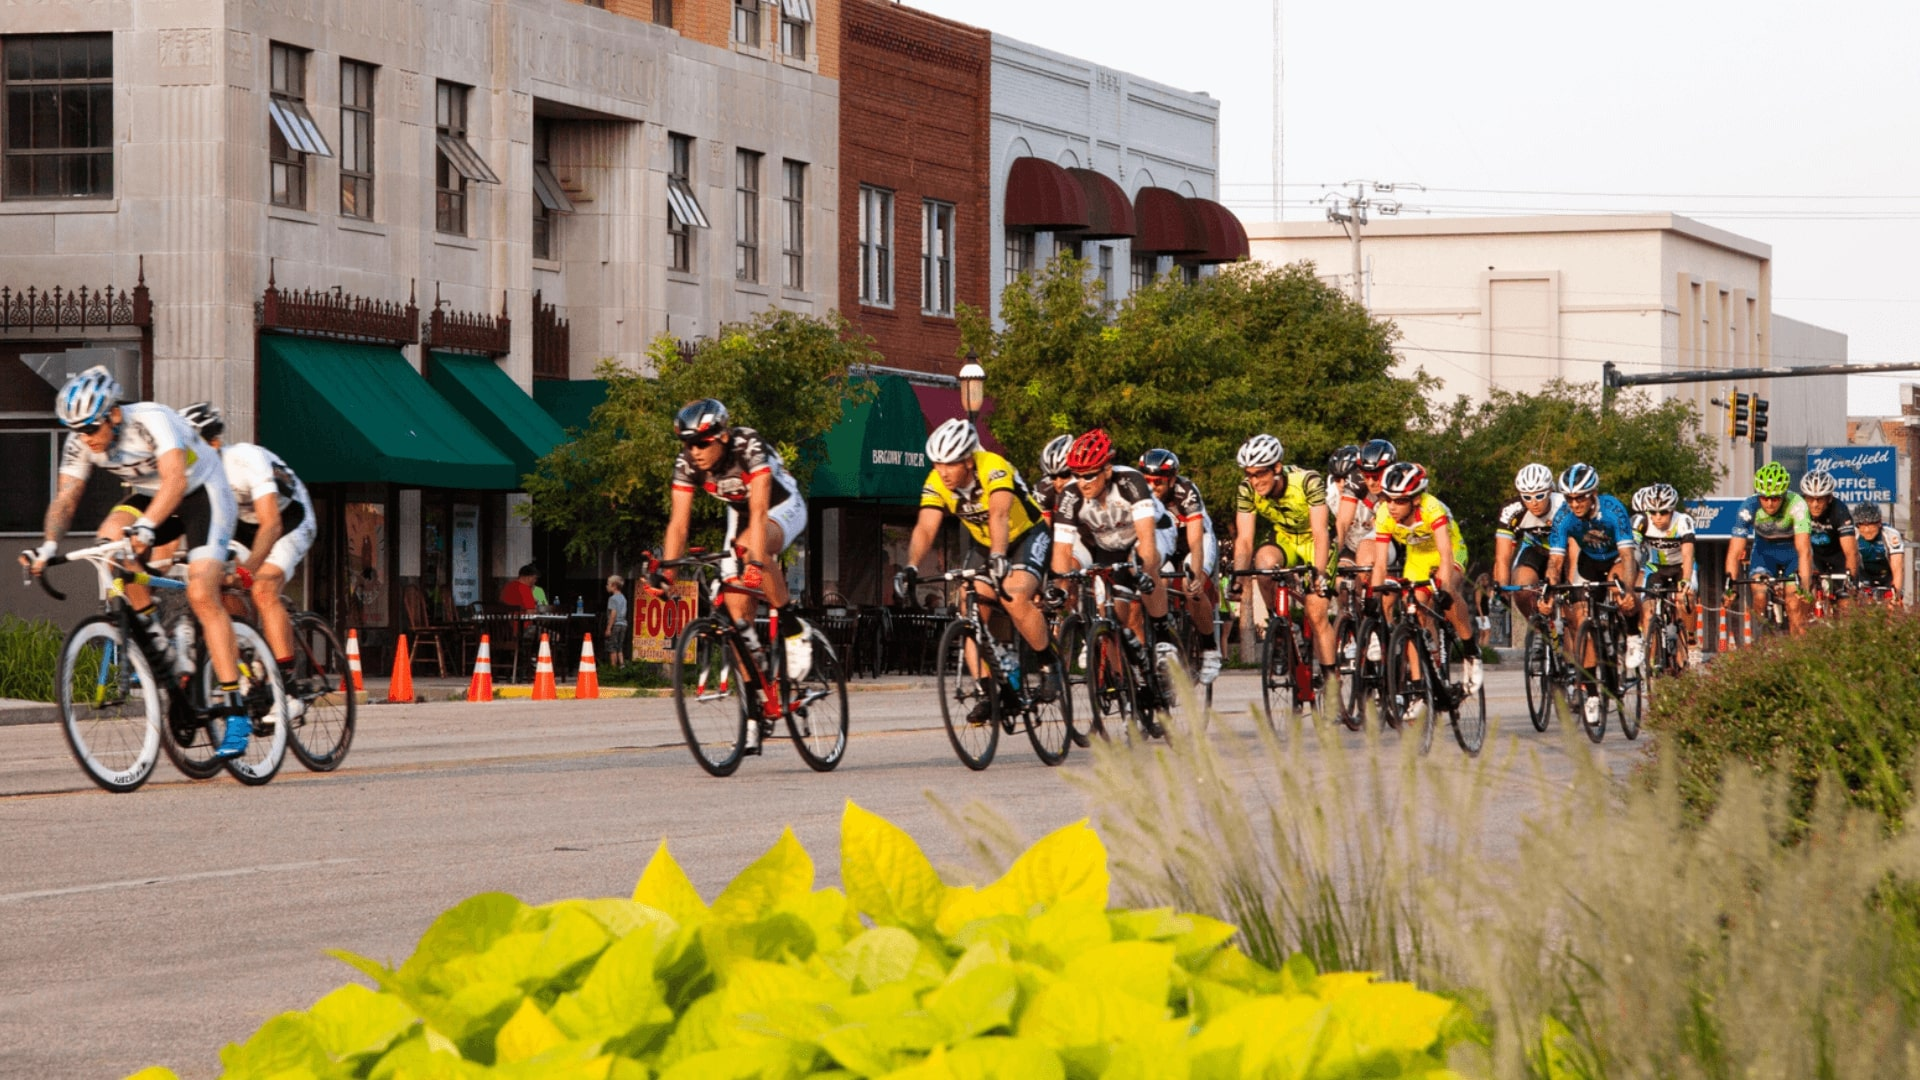 Bicycling in Downtown Enid